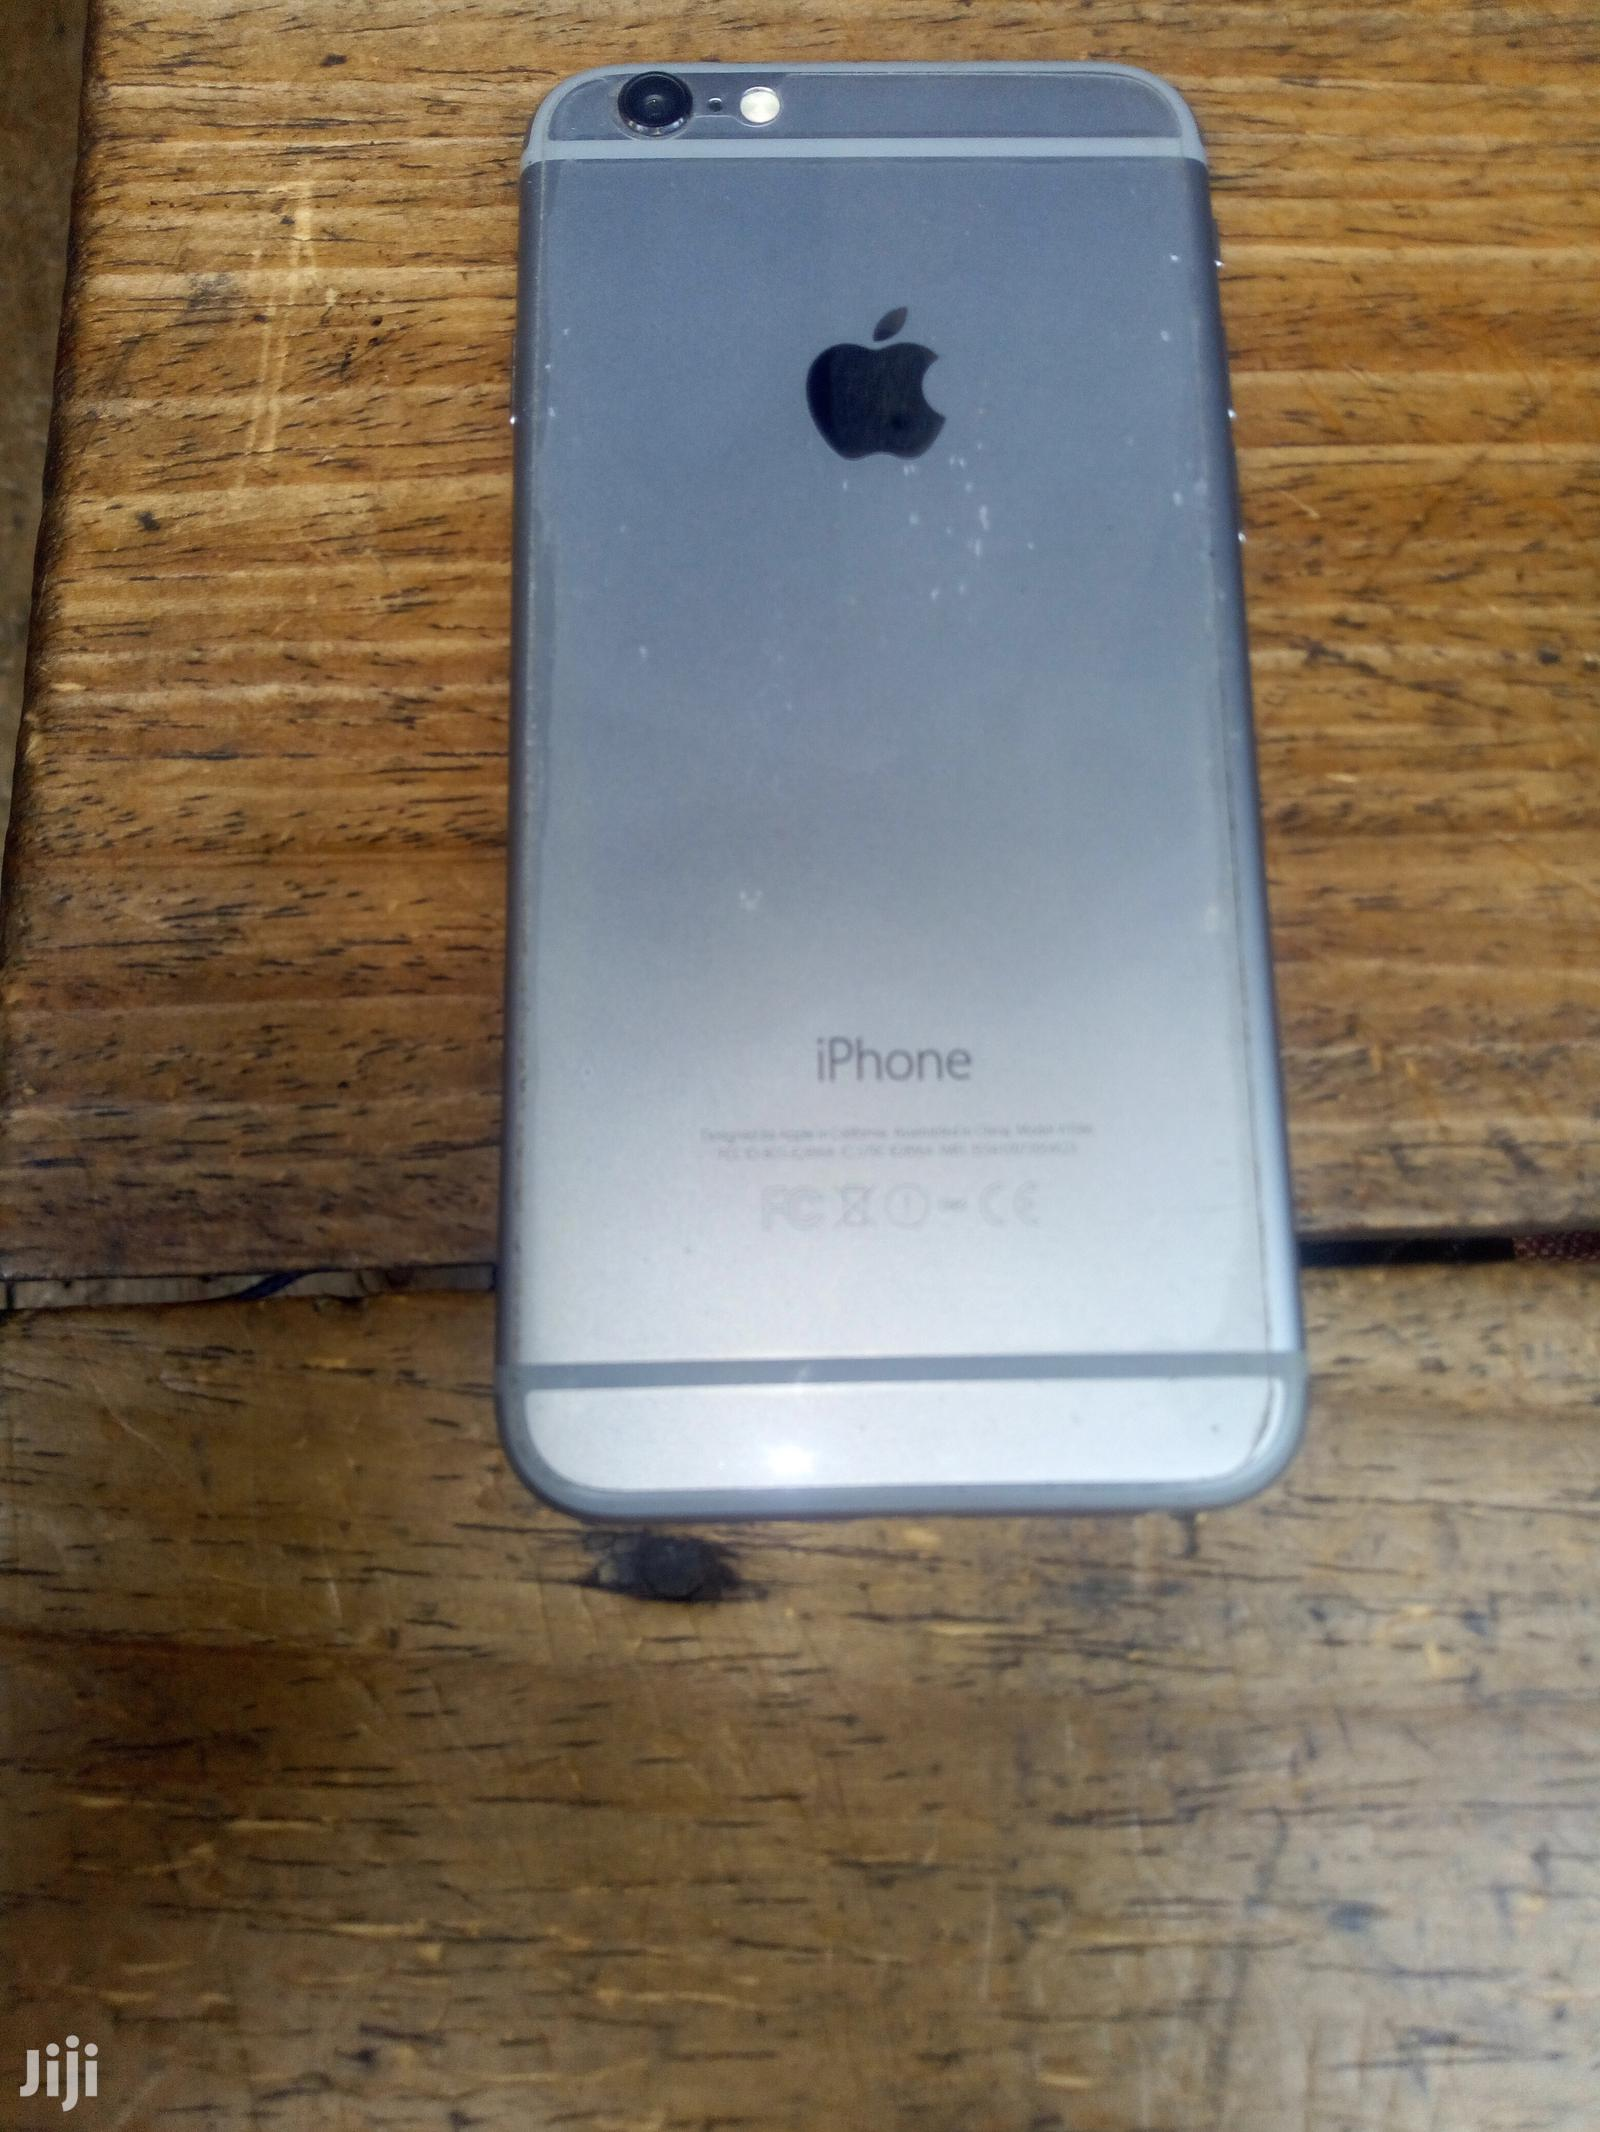 Apple iPhone 6 64 GB   Mobile Phones for sale in Dansoman, Greater Accra, Ghana